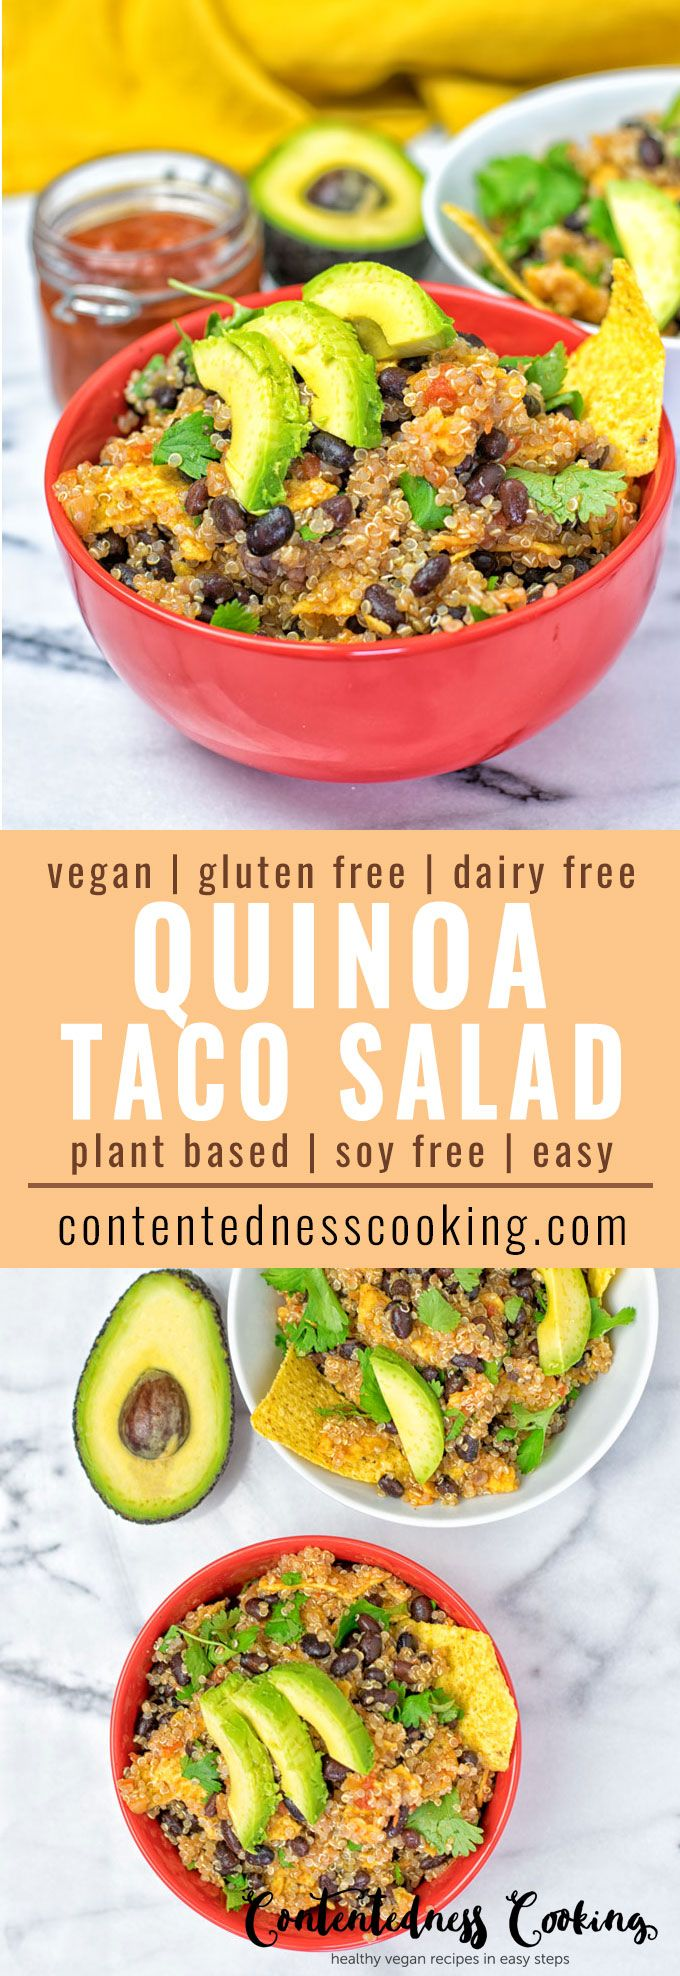 Enjoy this vegan Quinoa Taco Salad made with just 5 ingredients in 2 easy steps. A plant-based, gluten free, Mexican delight with